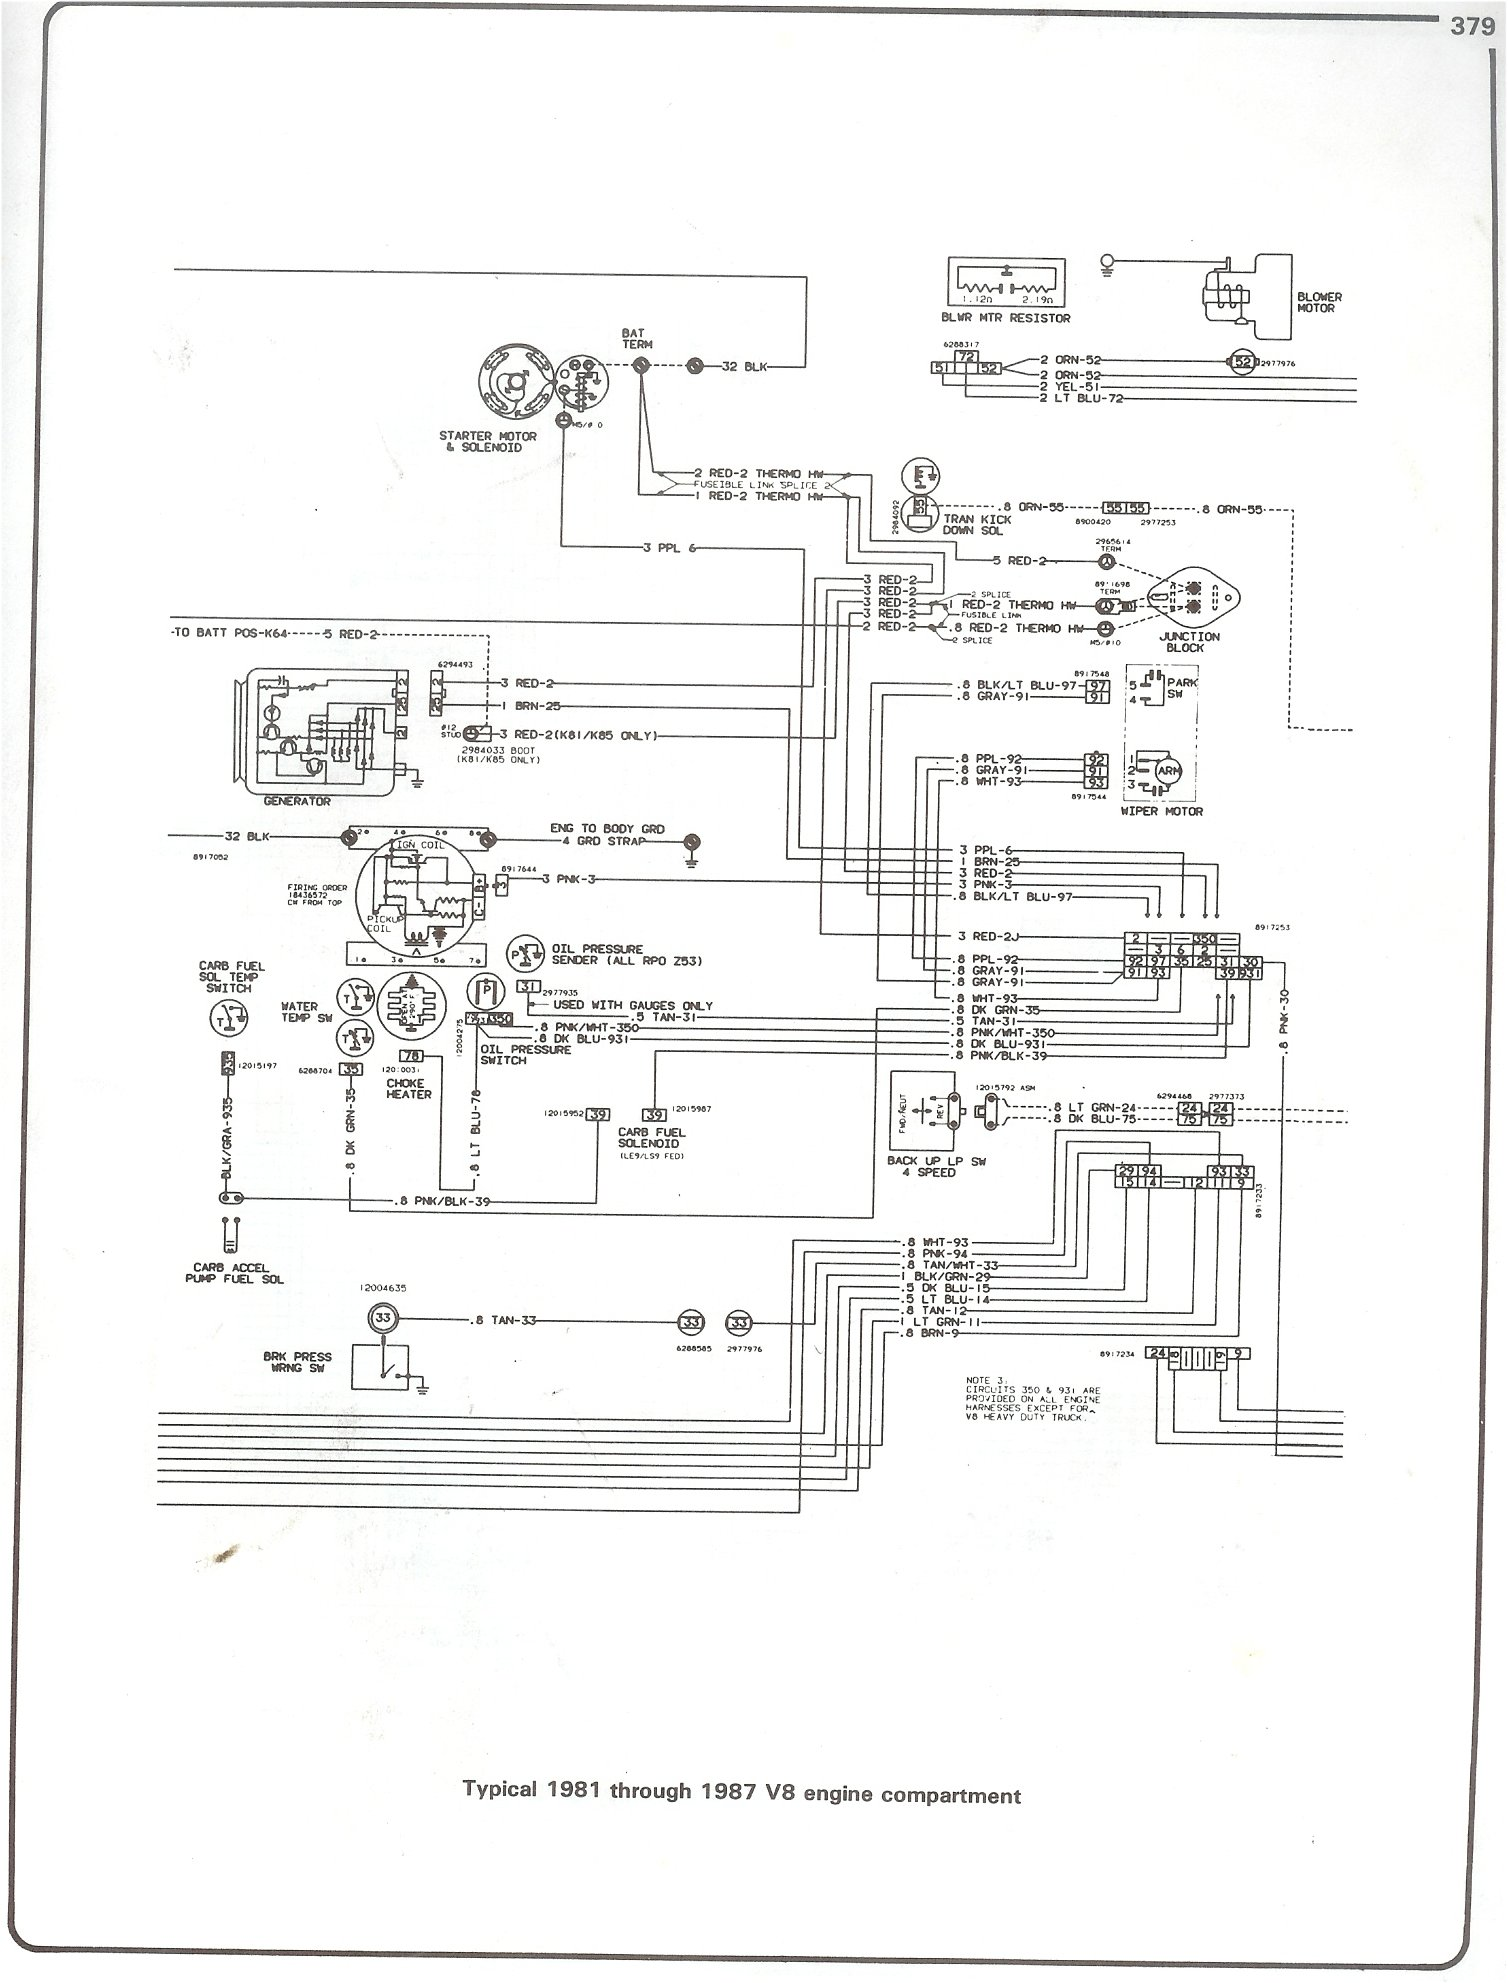 WRG-5660] 1995 Chevy Blazer Pcm Wiring Diagram